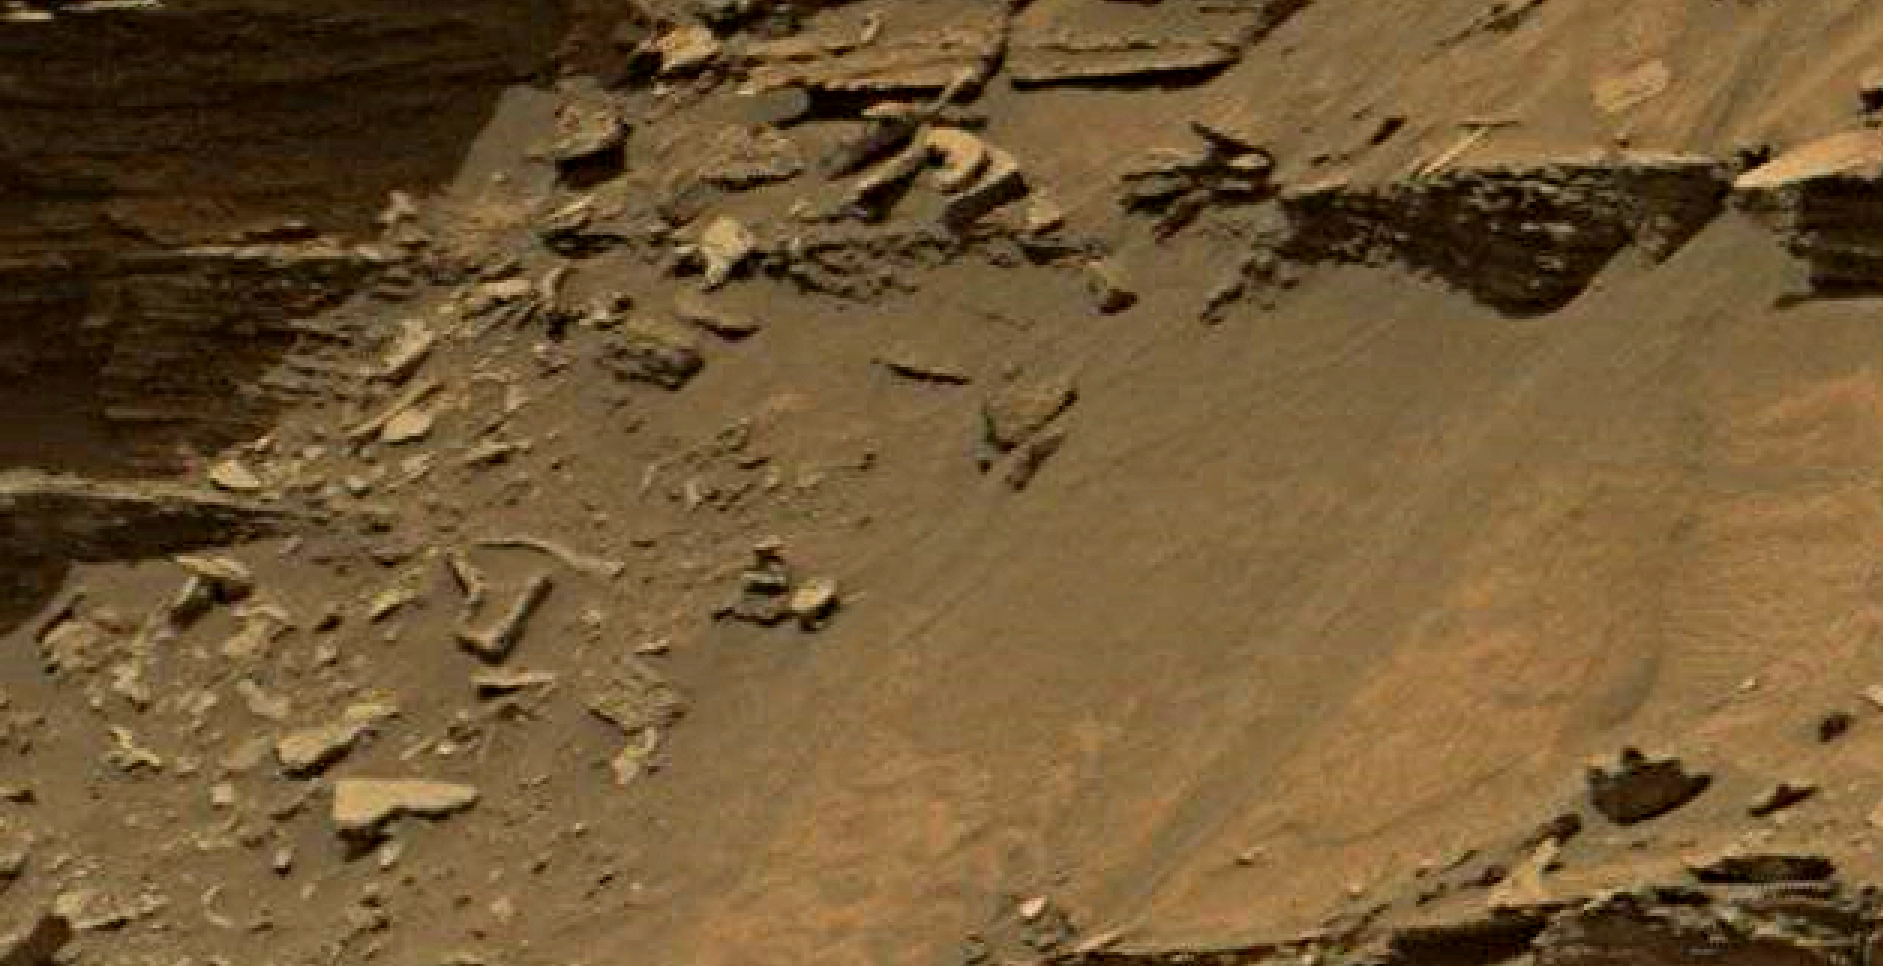 mars sol 1447 anomaly artifacts 8 - was life on mars